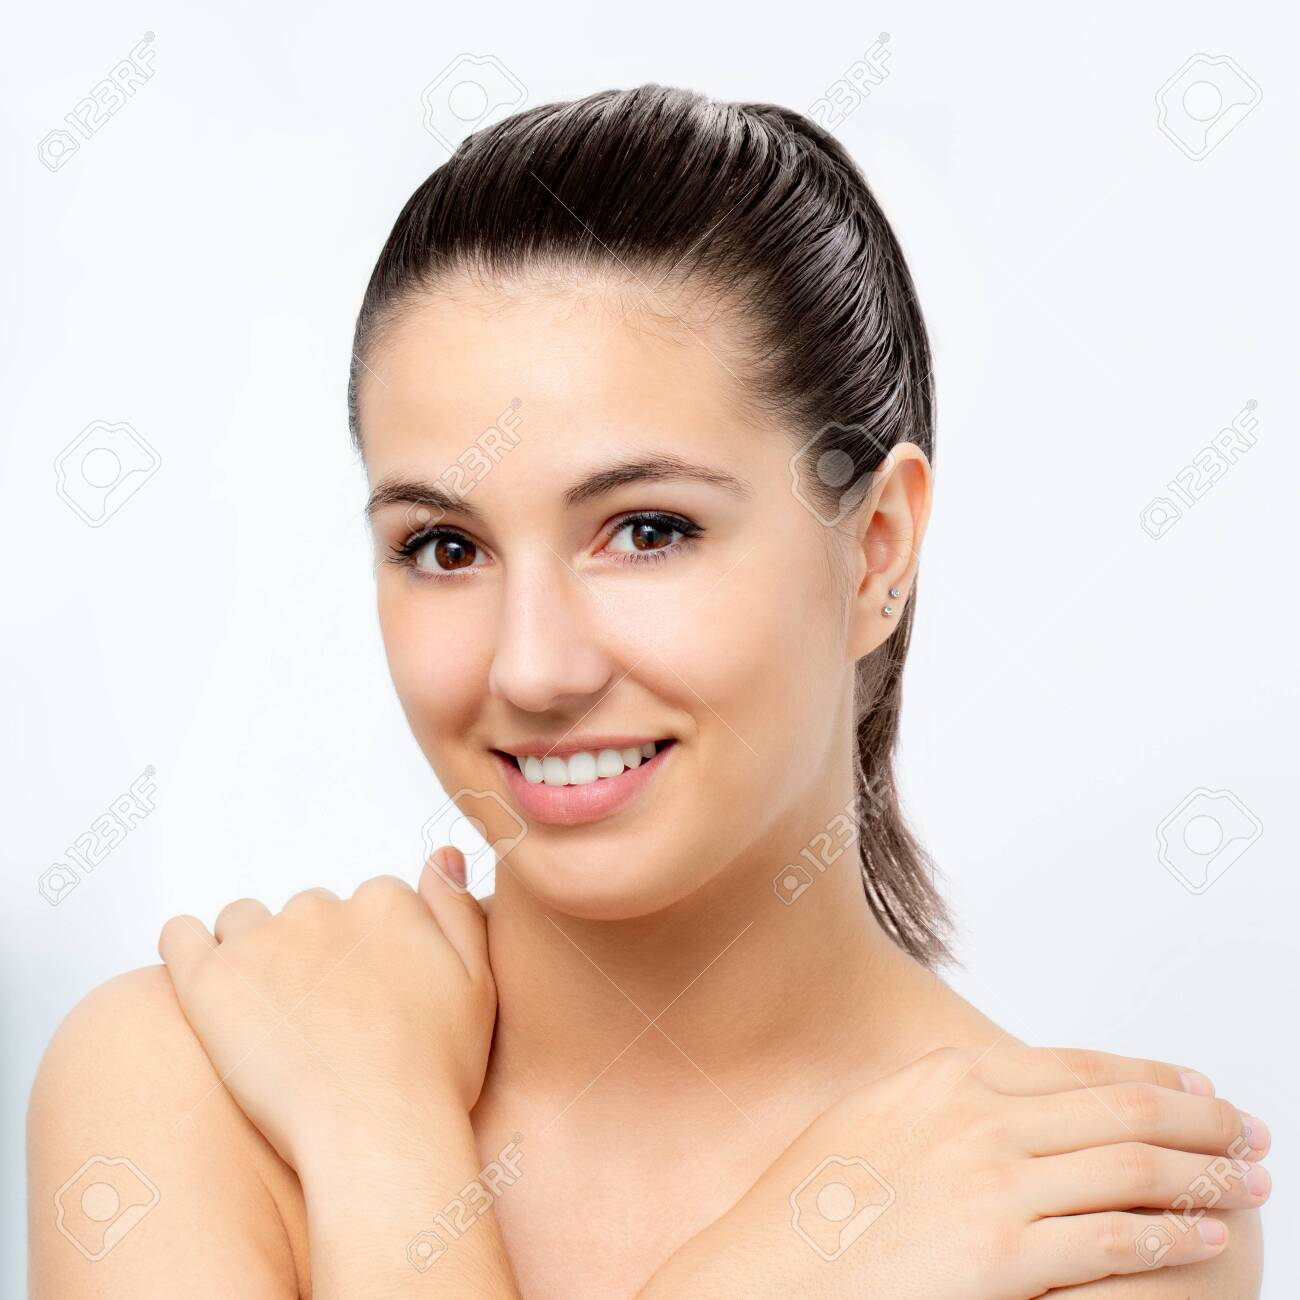 Close up beauty portrait of young attractive woman with hands on shoulders.Girl with healthy skin isolated on white background. - 131431000